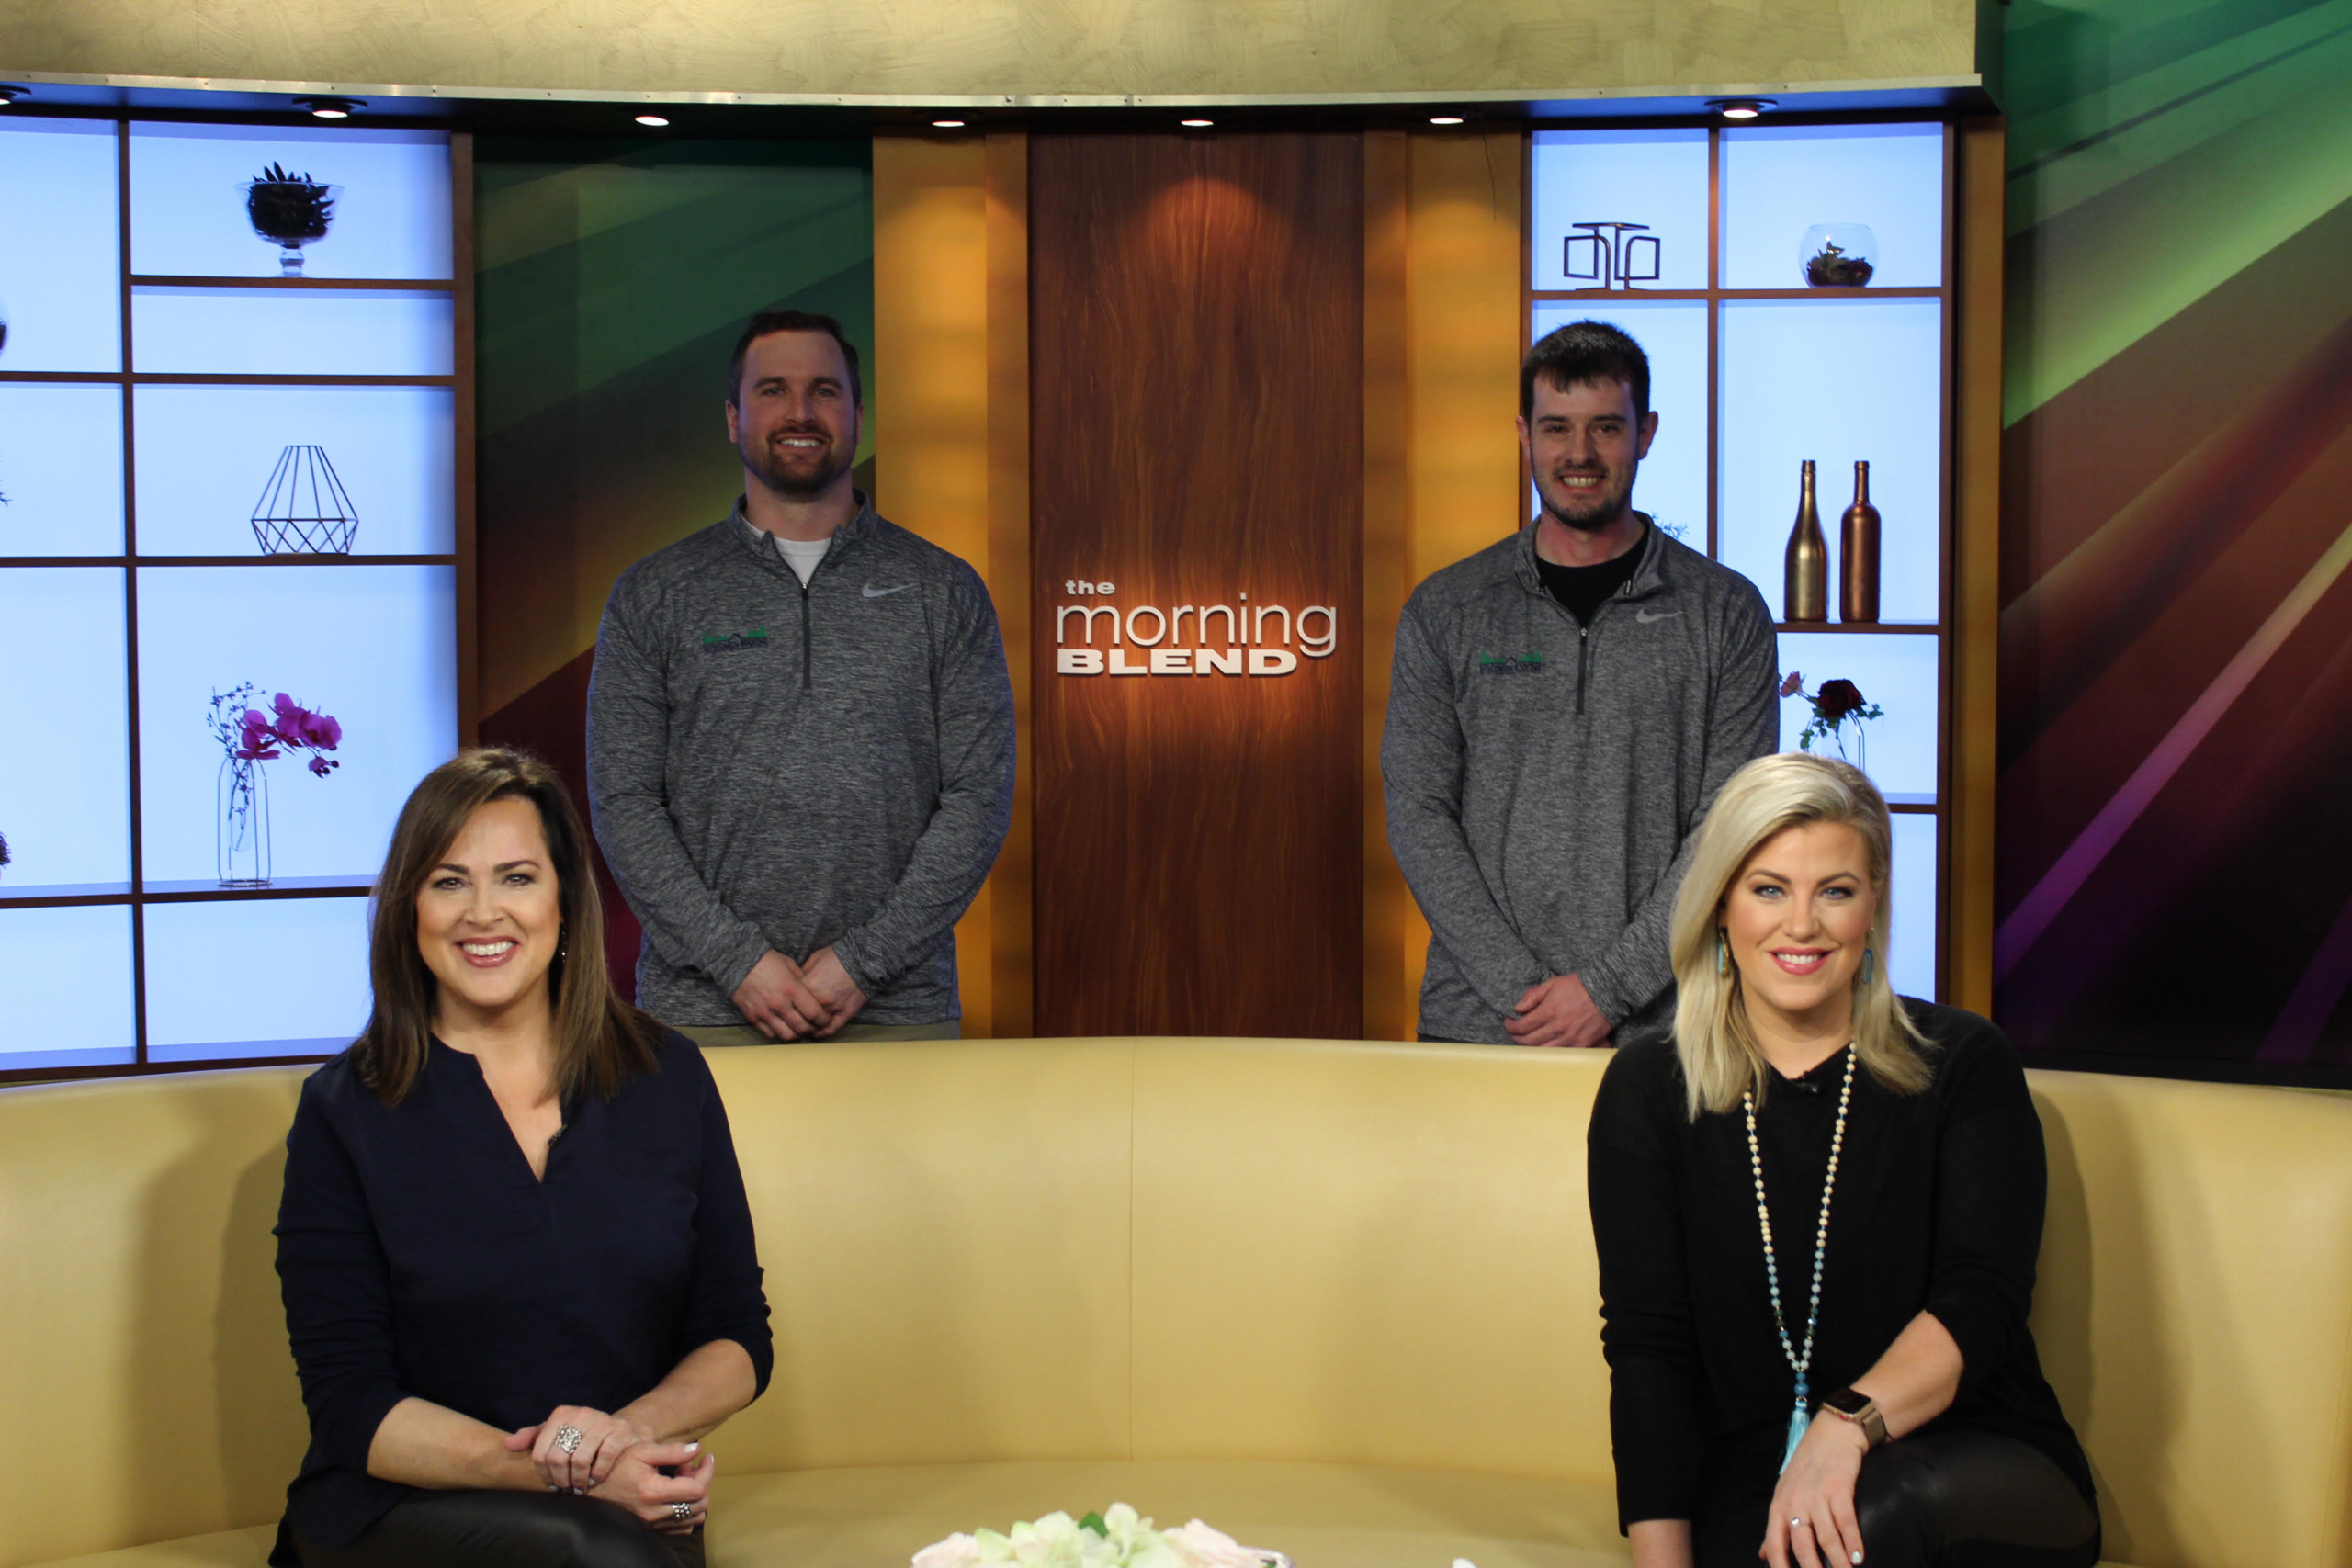 Wisconsin Roofing LLC | The Morning Blend